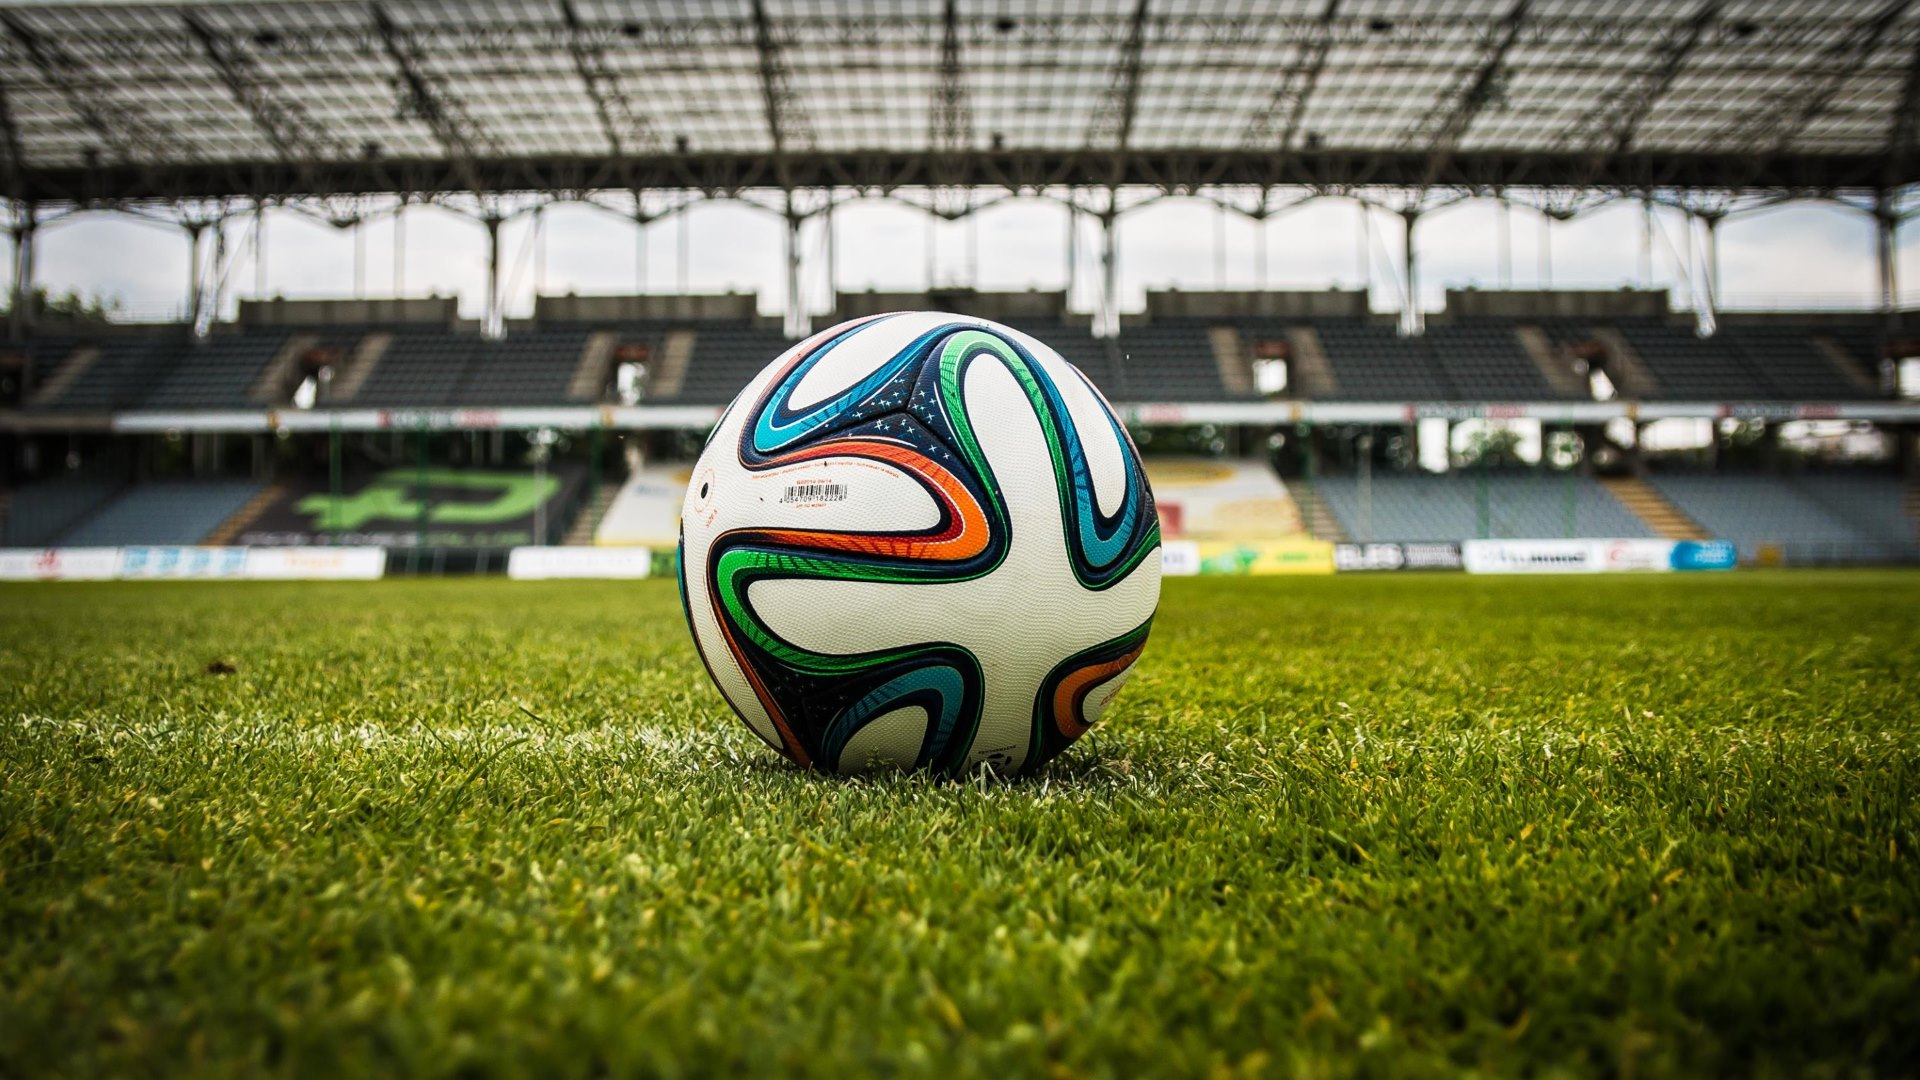 ... Computer Wallpapers, Desktop Backgrounds | 1920x1080 | ID:550393 Soccer Backgrounds For Iphone